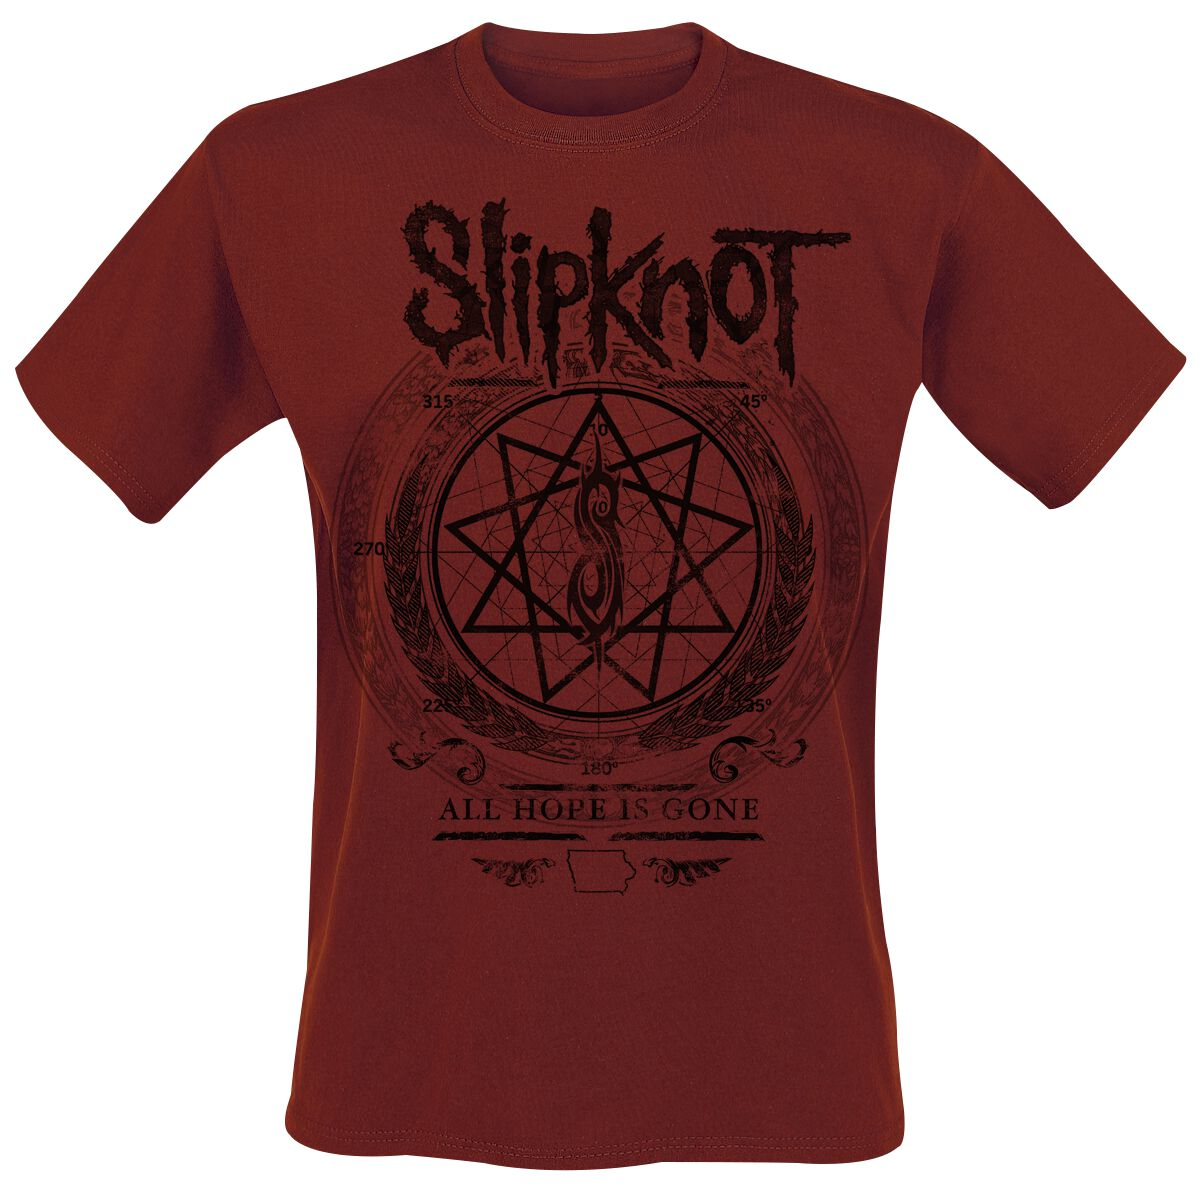 Image of   Slipknot Blurry T-Shirt mørk rød